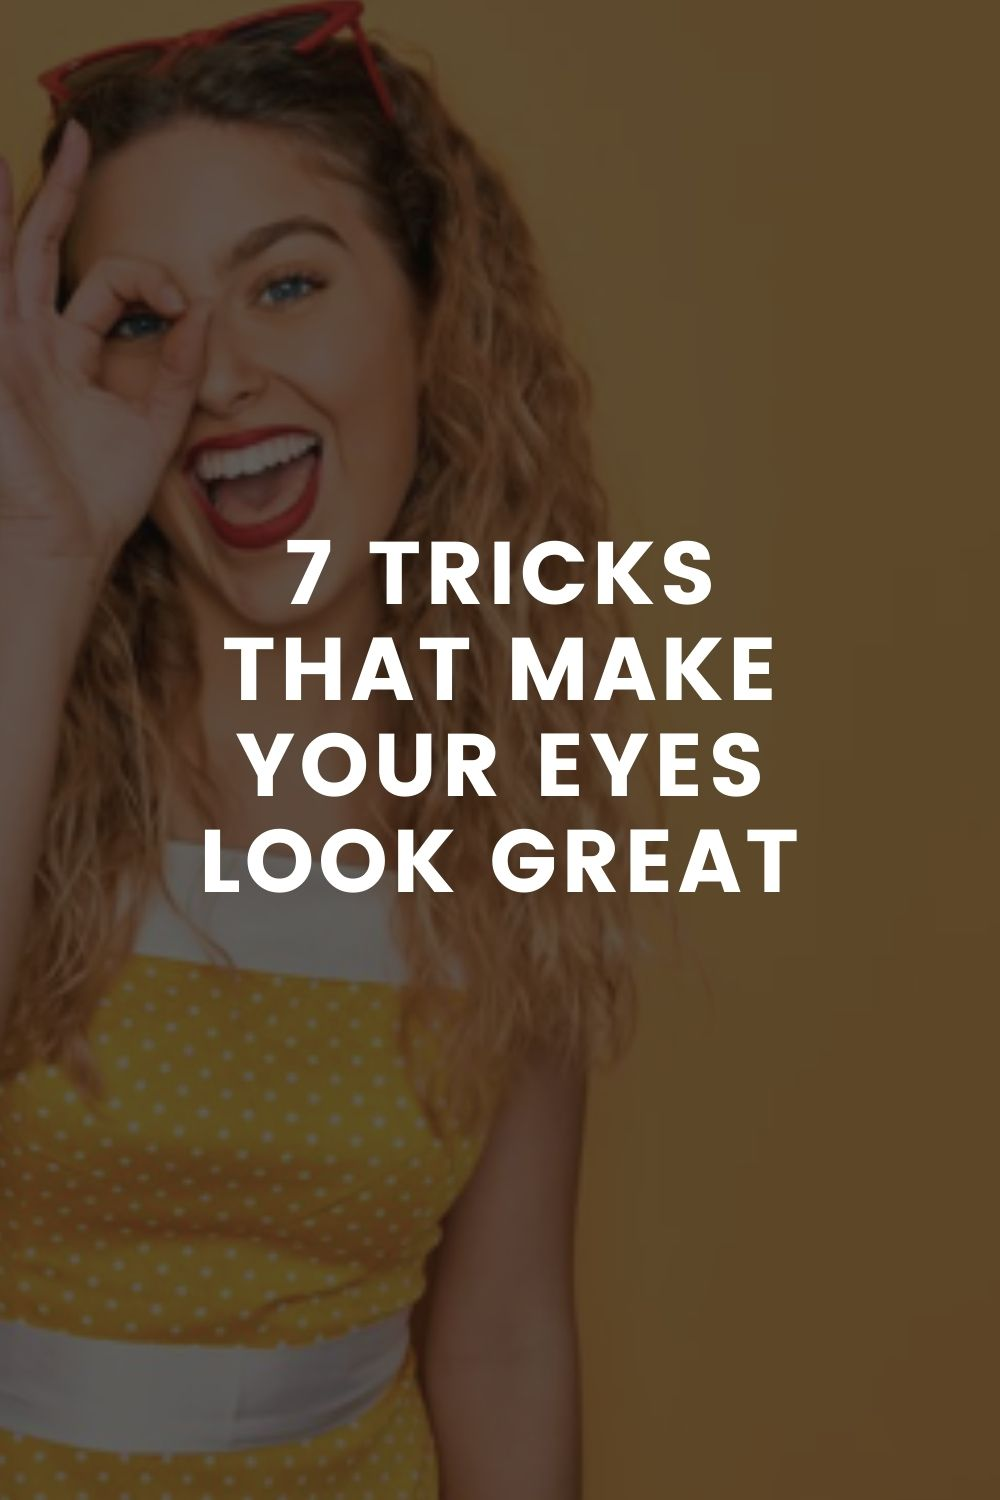 7 Tricks That Make Your Eyes Look Great